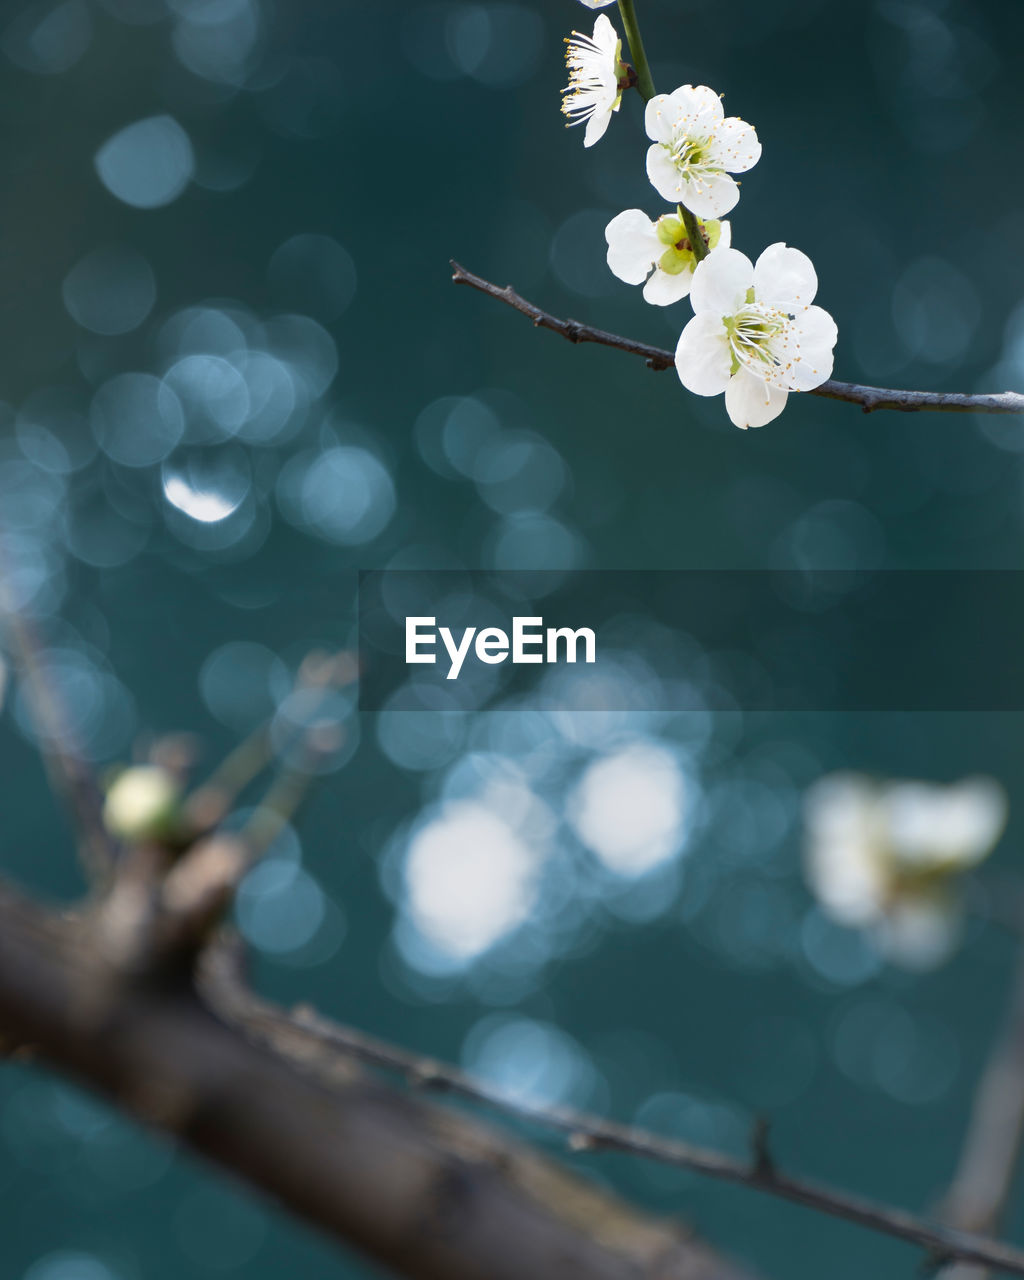 flowering plant, flower, plant, beauty in nature, fragility, freshness, vulnerability, growth, white color, nature, close-up, focus on foreground, selective focus, day, no people, flower head, inflorescence, petal, twig, blossom, springtime, outdoors, lens flare, cherry blossom, plum blossom, pollen, cherry tree